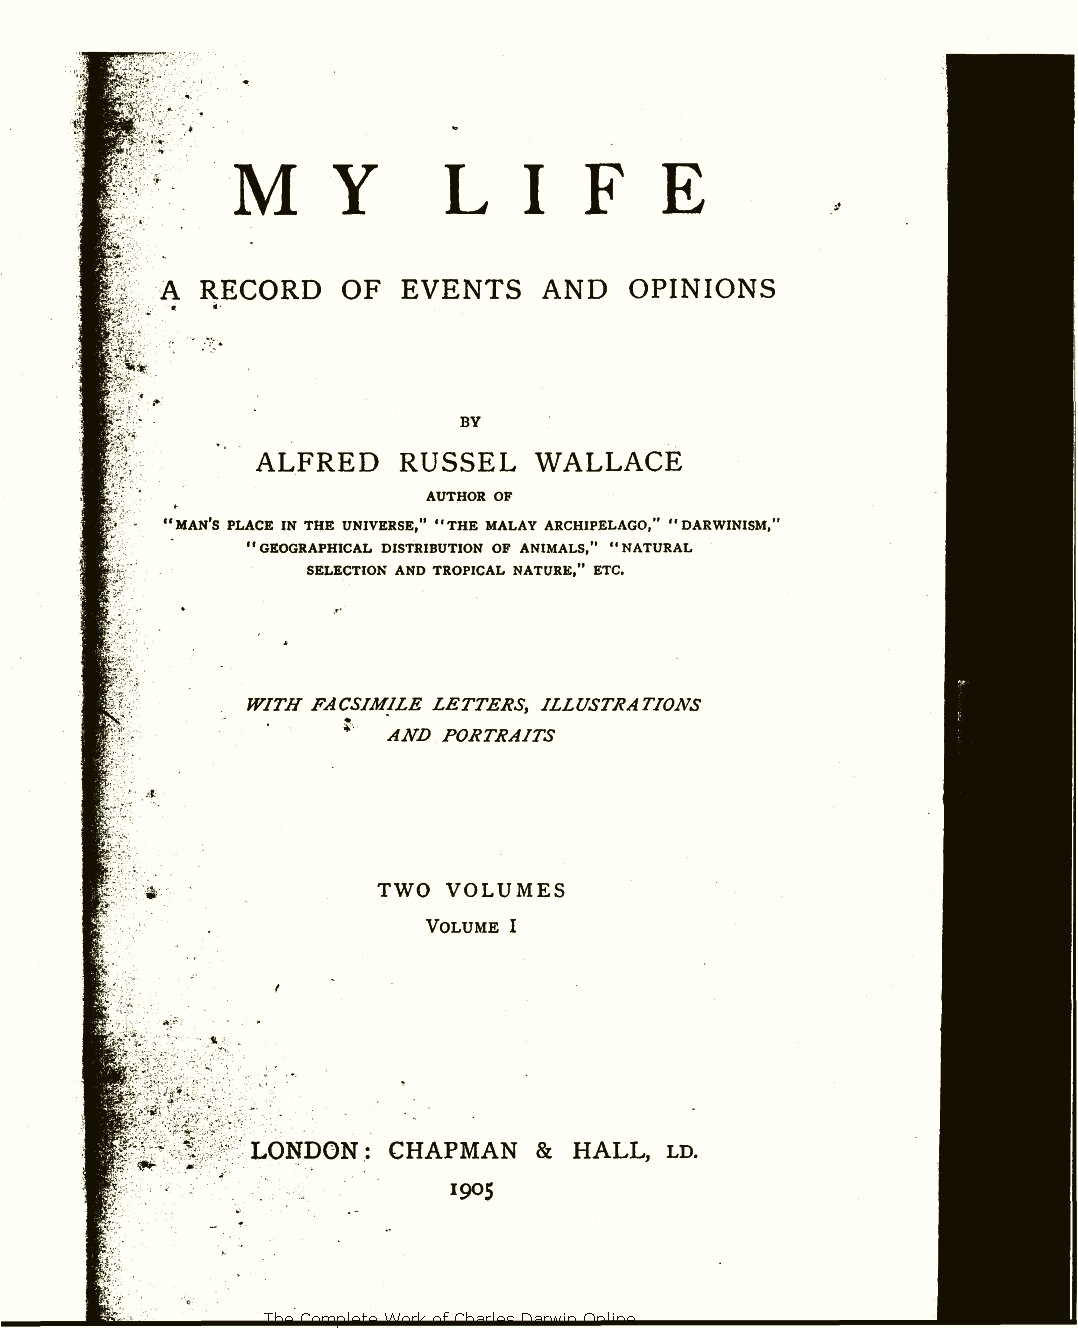 Wallace A R 1905 My Life Record Of Events And Opinions London Chapman Hall Volume 1